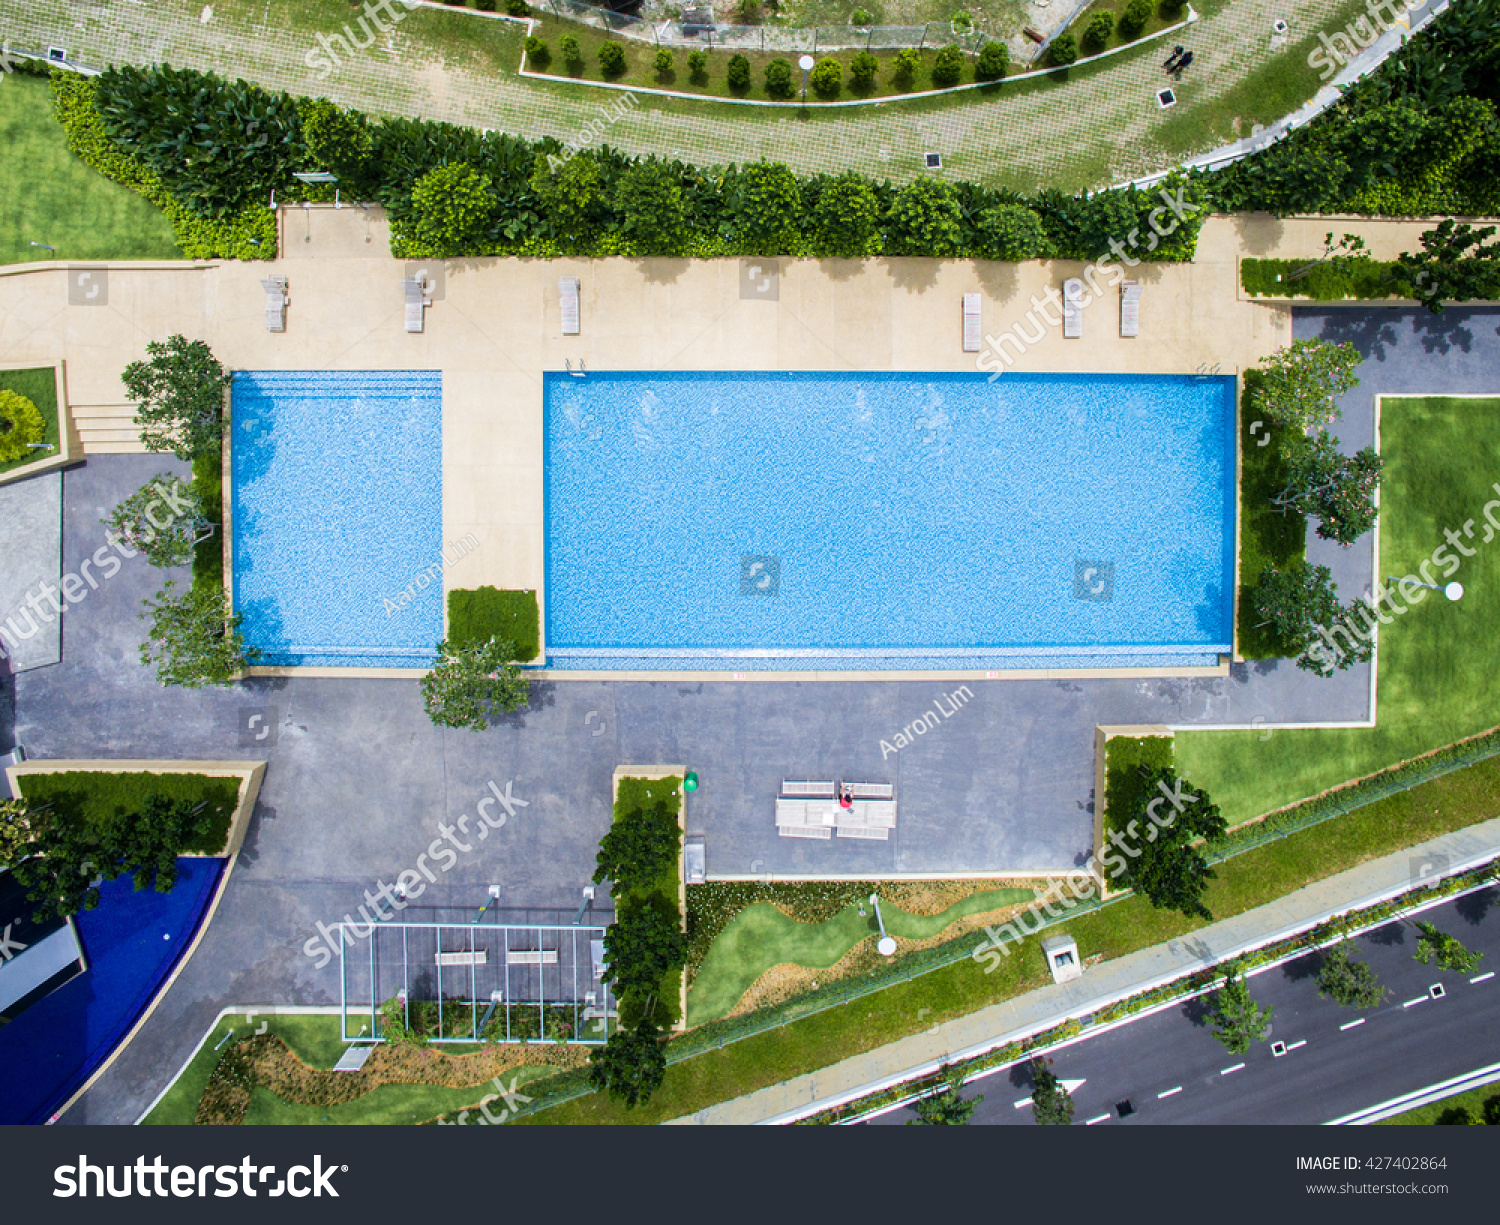 top down aerial view of rectangle swimming pool - Rectangle Pool Aerial View